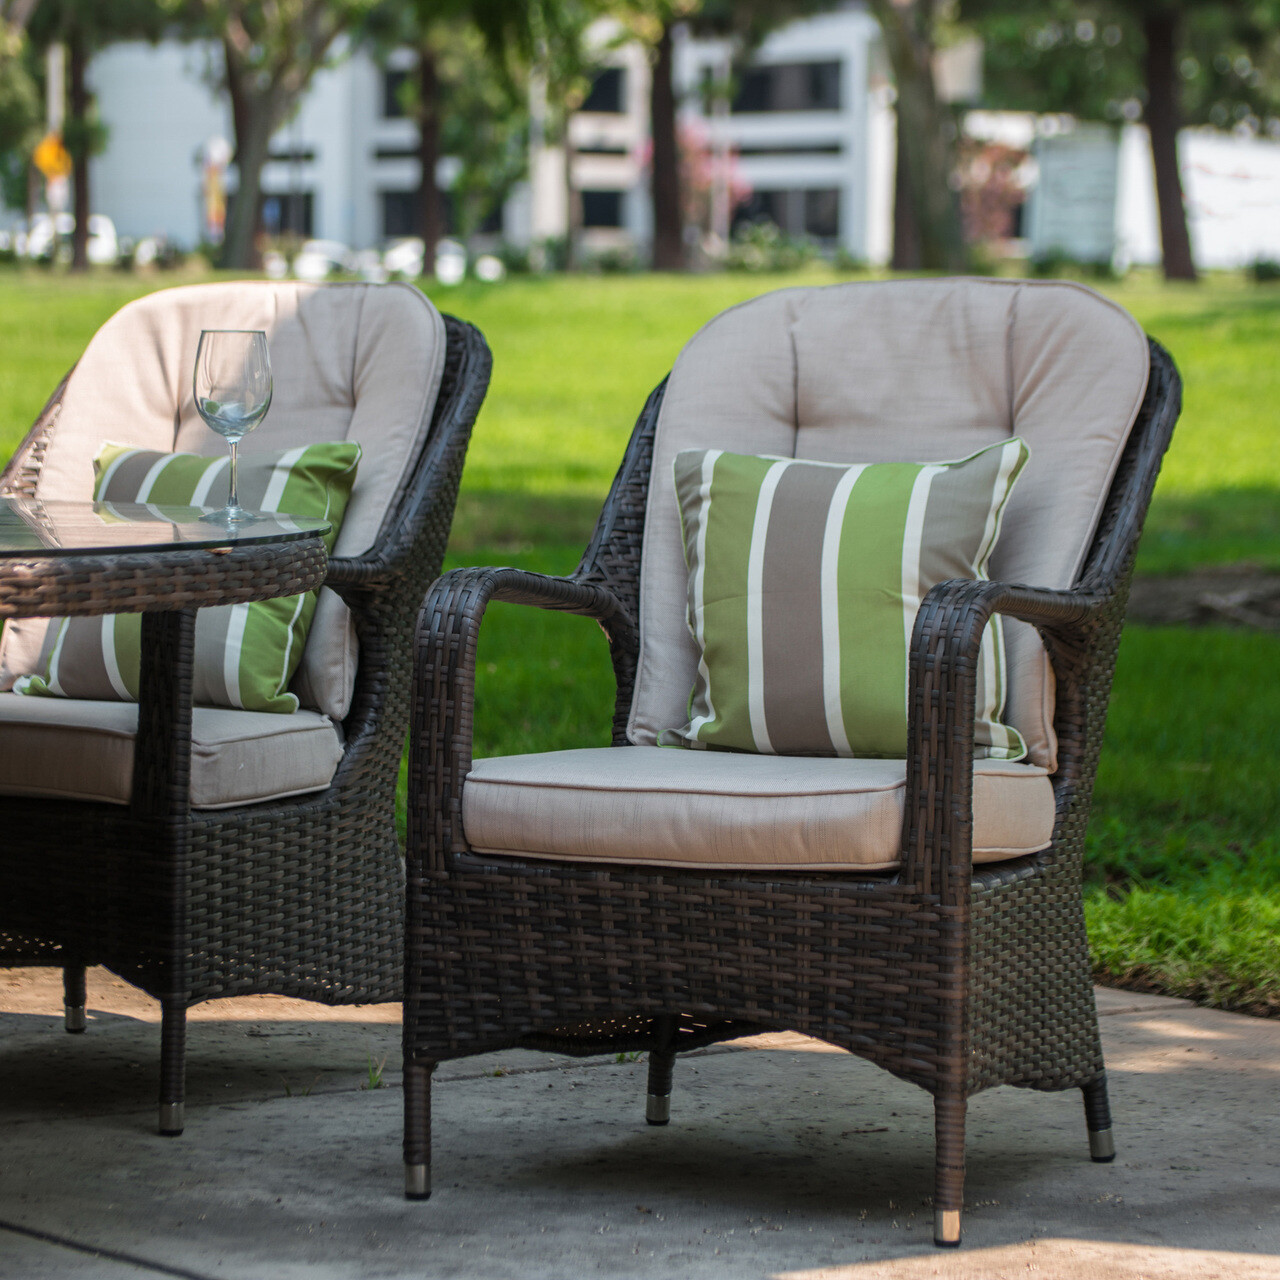 Wick's Lumbar Supported High Back Chairs